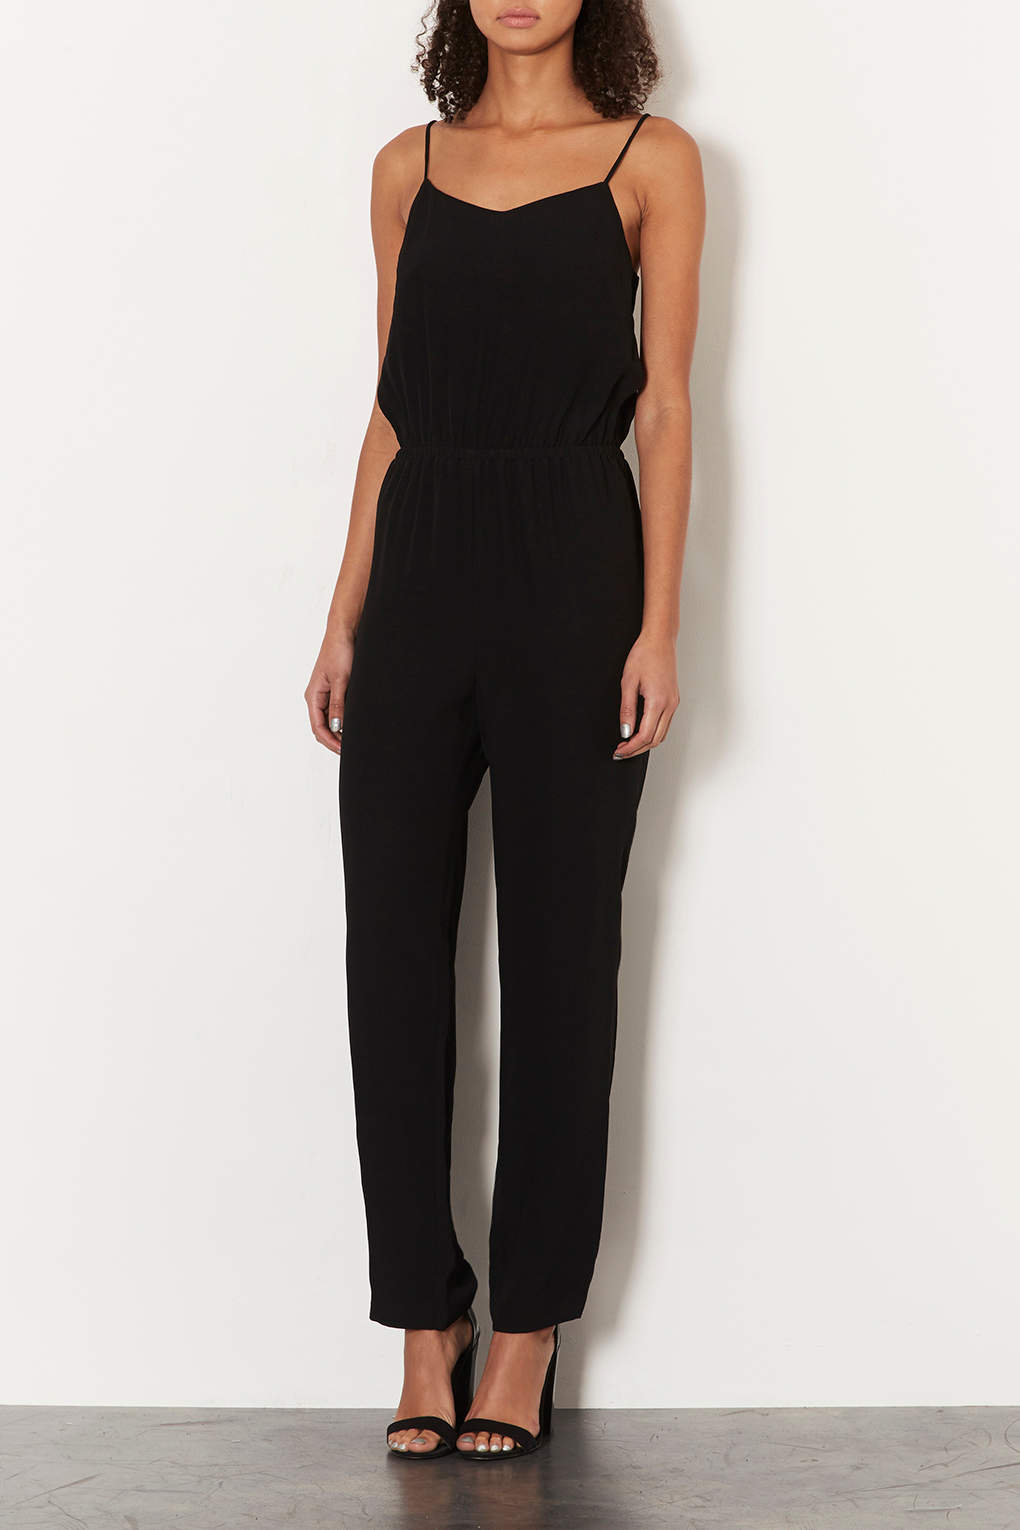 2f5e2c2ad64 Lyst - TOPSHOP Tall Satin Strappy Jumpsuit in Black